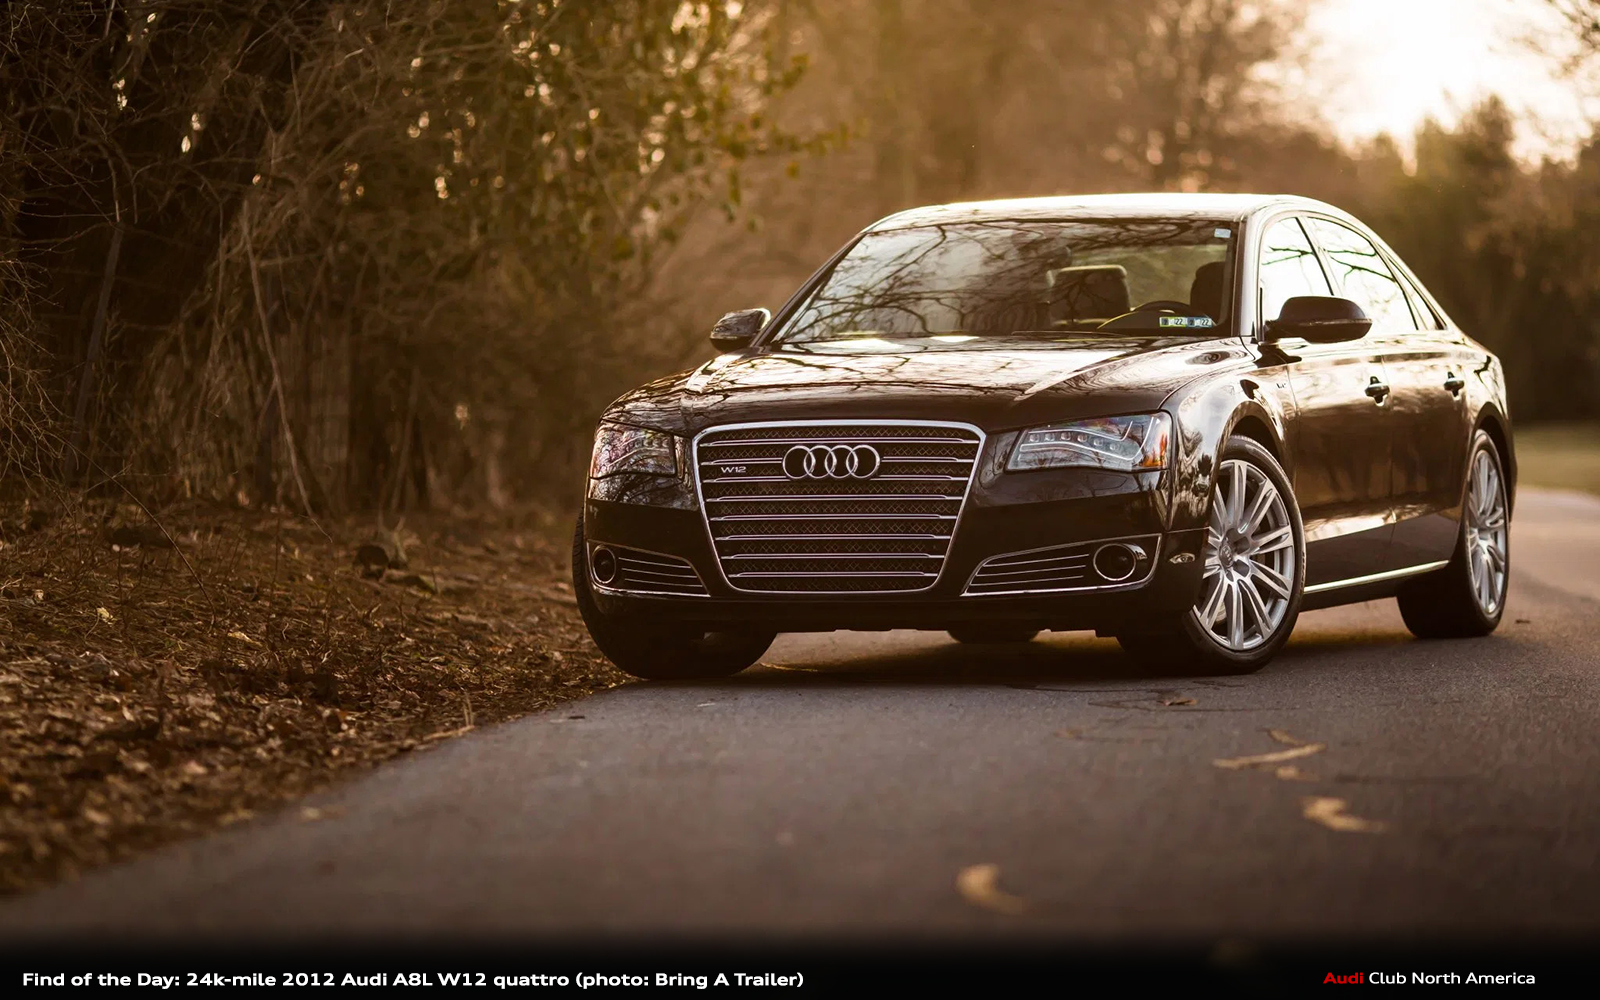 Find of the Day: 24K-Mile 2012 Audi A8L W12